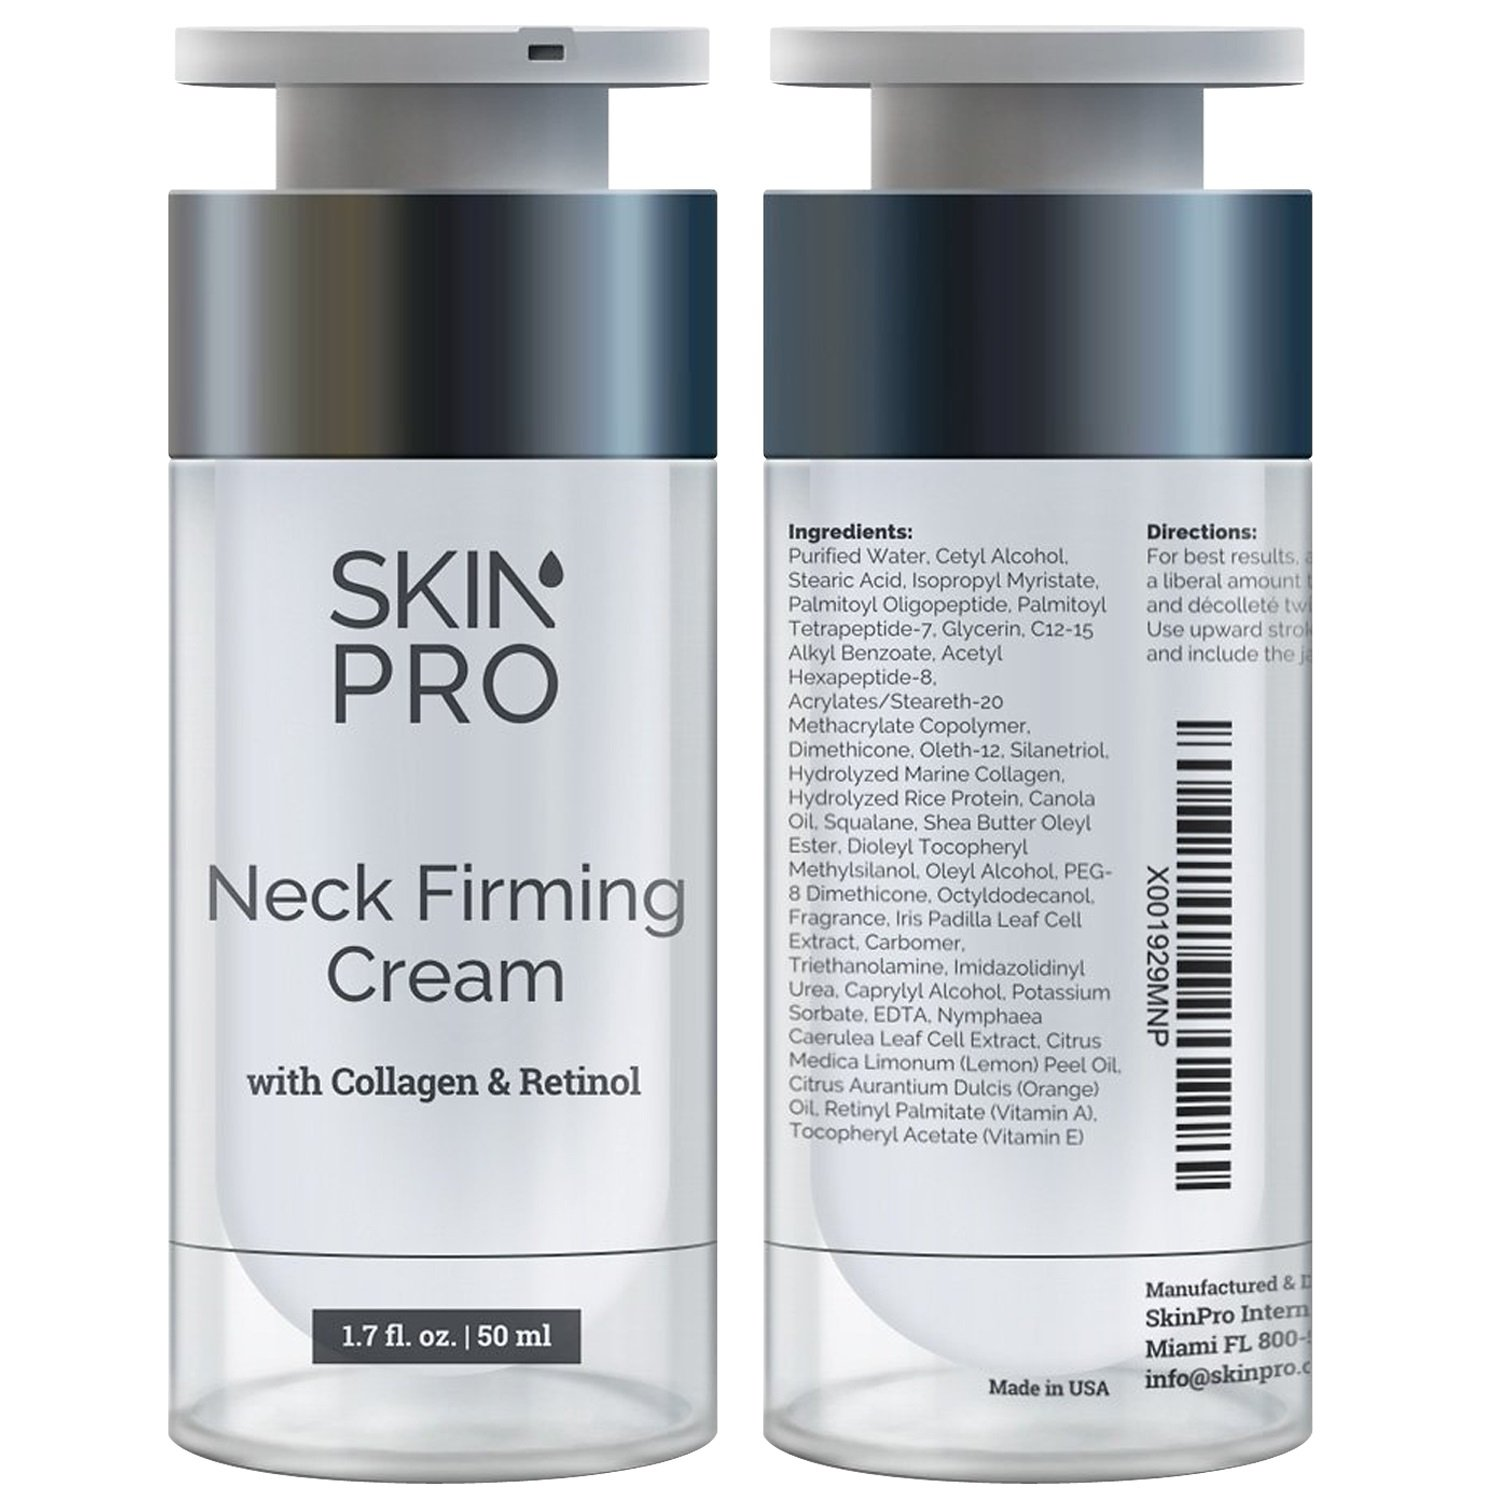 Neck Firming Cream - Anti Aging & Skin Tightening Serum by SkinPro - Age Defying - Made with Marine Collagen & Peptides - Contains Vitamin A & Retinol for Firm Skin - Paraben Free by SkinPro